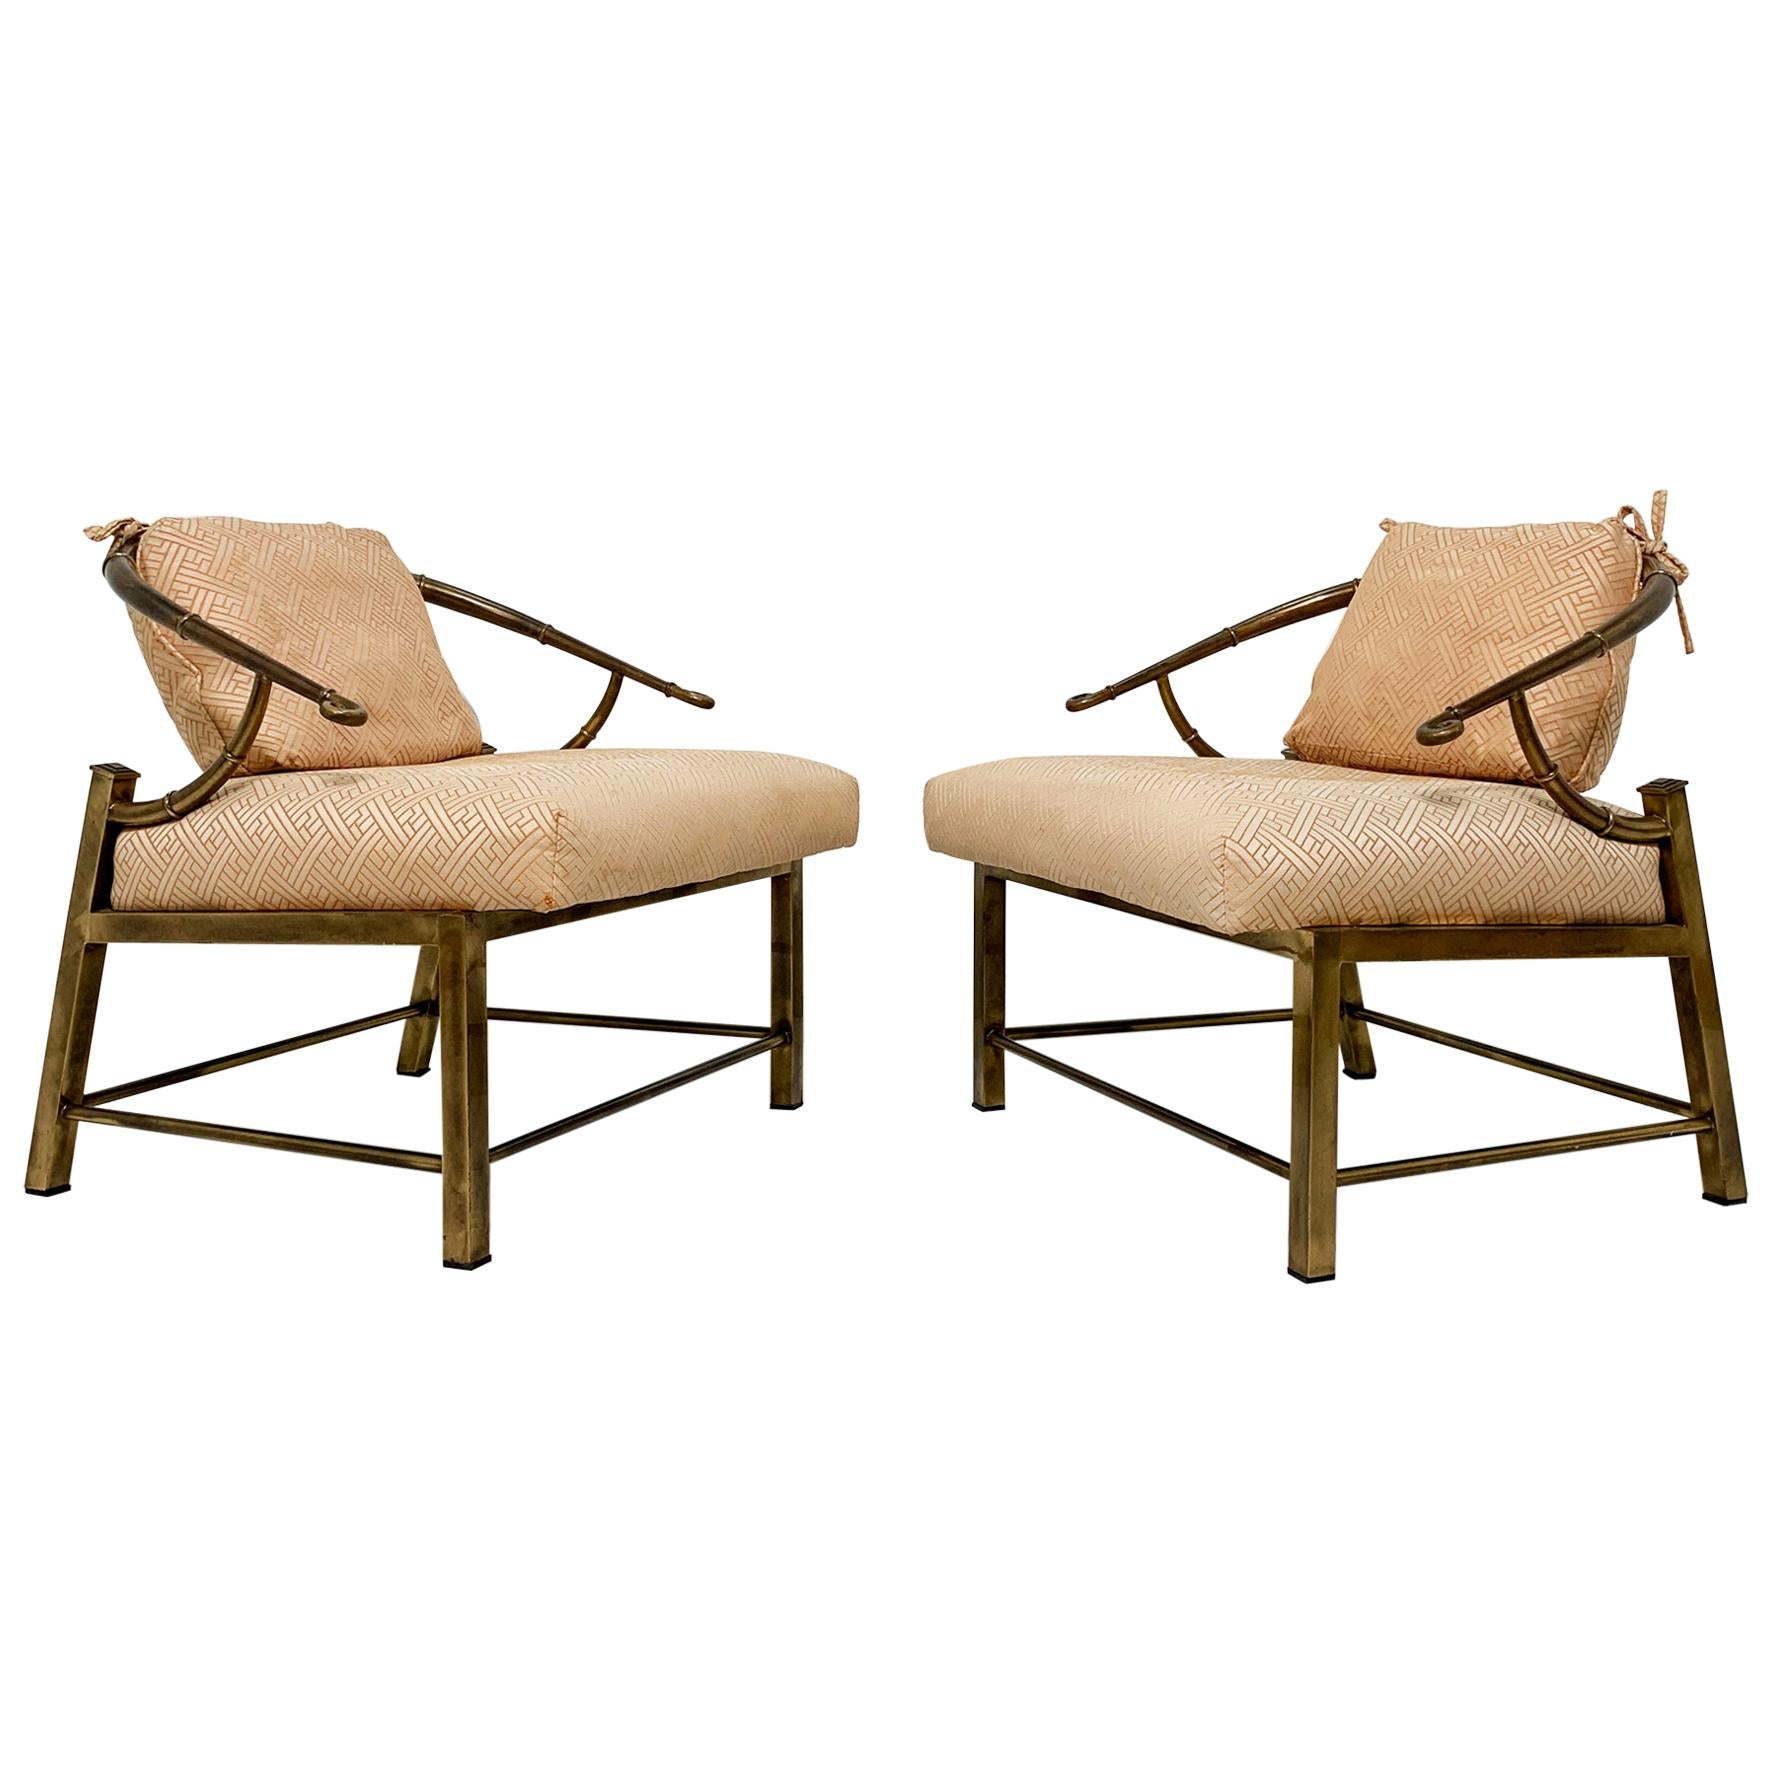 Pair of Mastercraft Hollywood Regency Lounge Chairs by Pengelly, circa 1960s